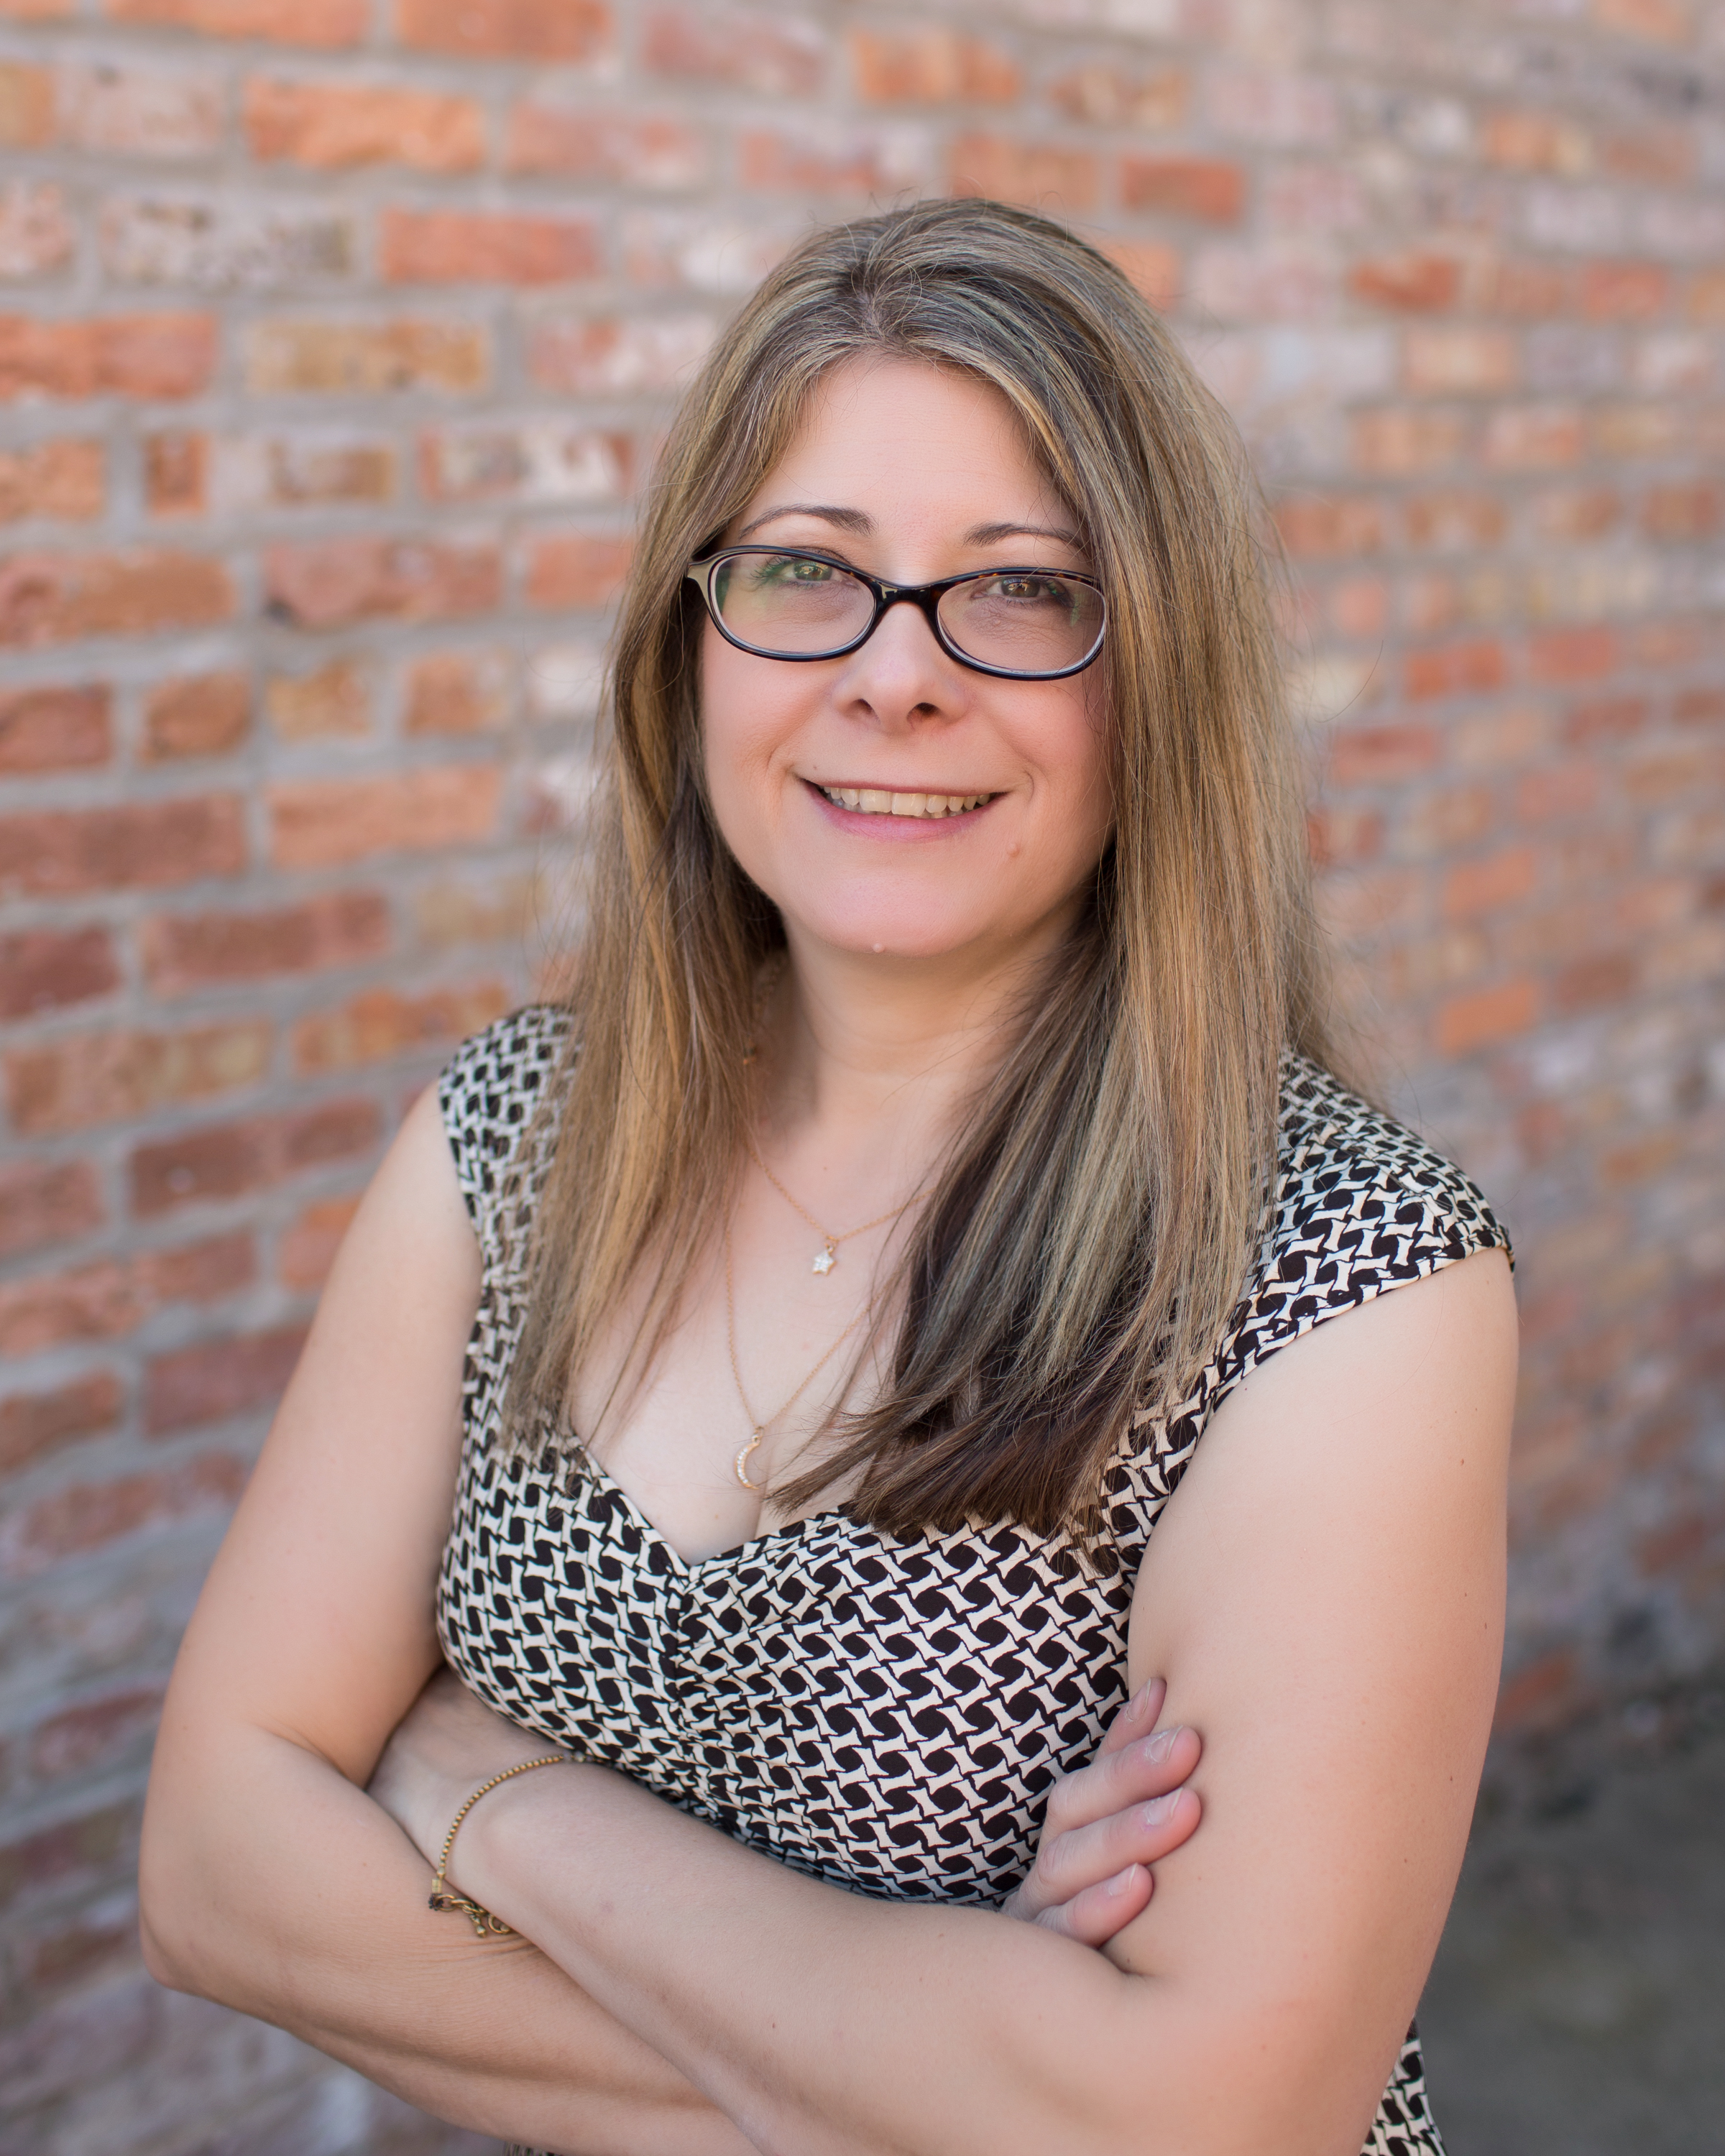 What transitioning from a litigation firm to a solo entrepreneurial journey has taught me: - It is not easy to make a transition and do something different. But by making that leap I have learned so many new skills I may not have if I didn't do it. Becoming involved in small business and a solo practice has expanded my understanding of business and allowed me to gain new skills and experiences.